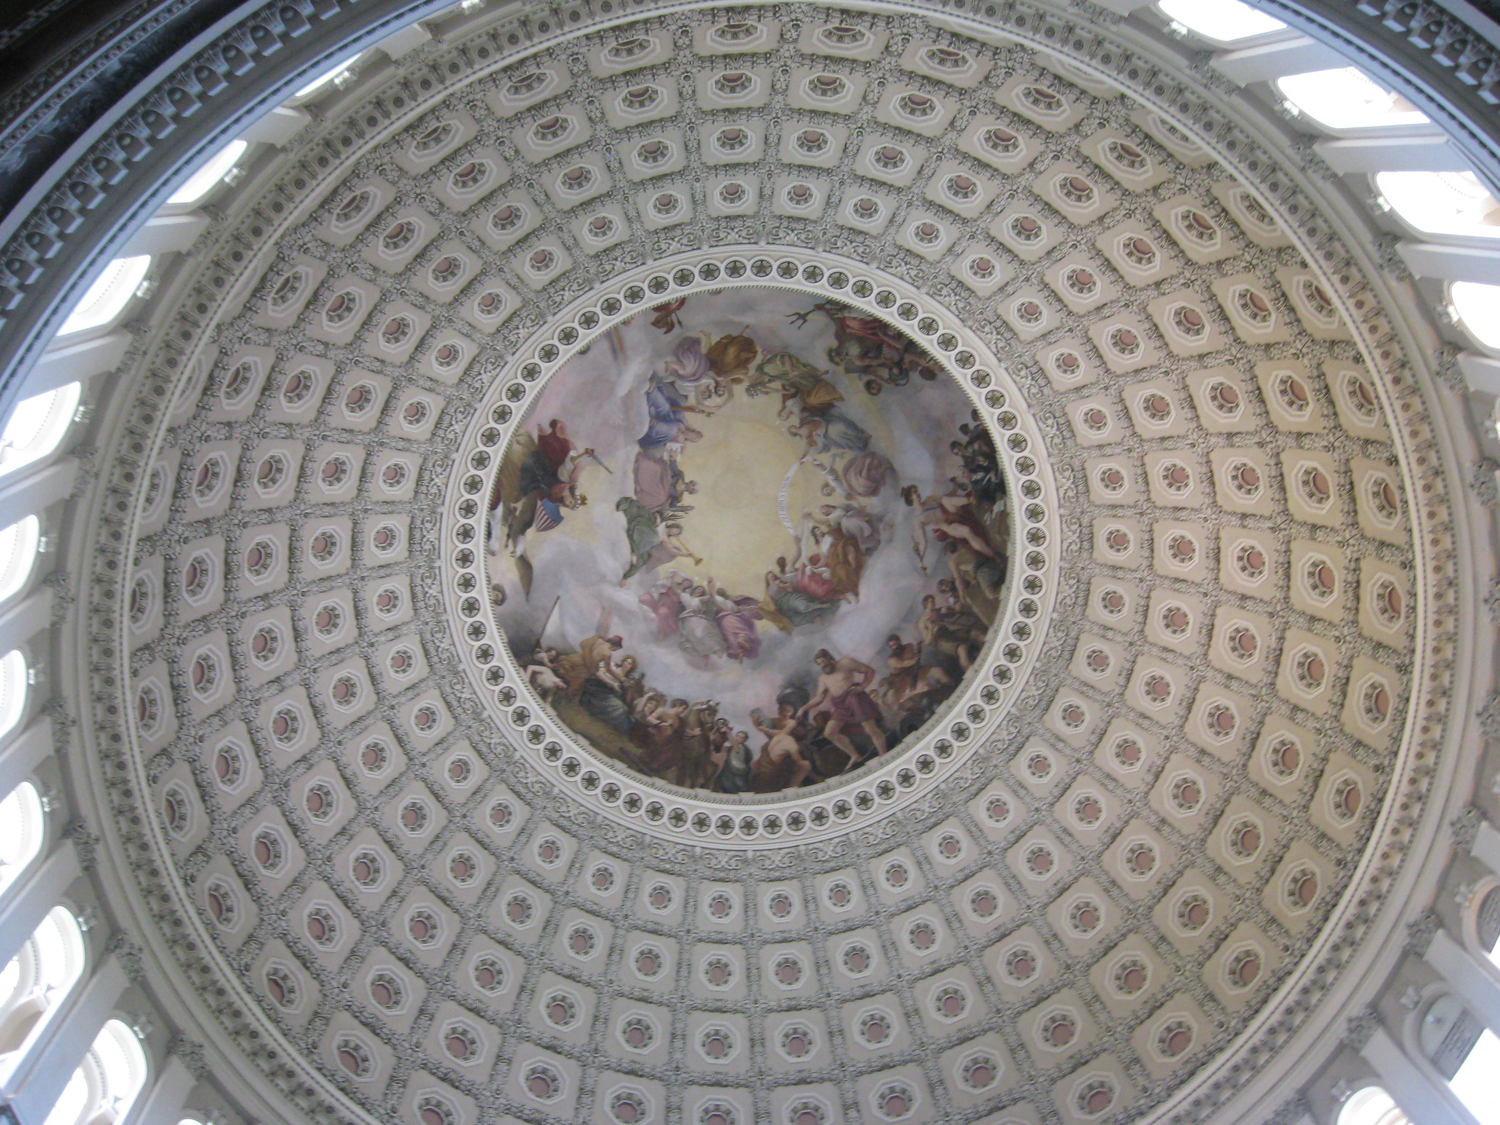 U.S. Capitol ceiling,  Student Photo: ©2013 Stacy McName